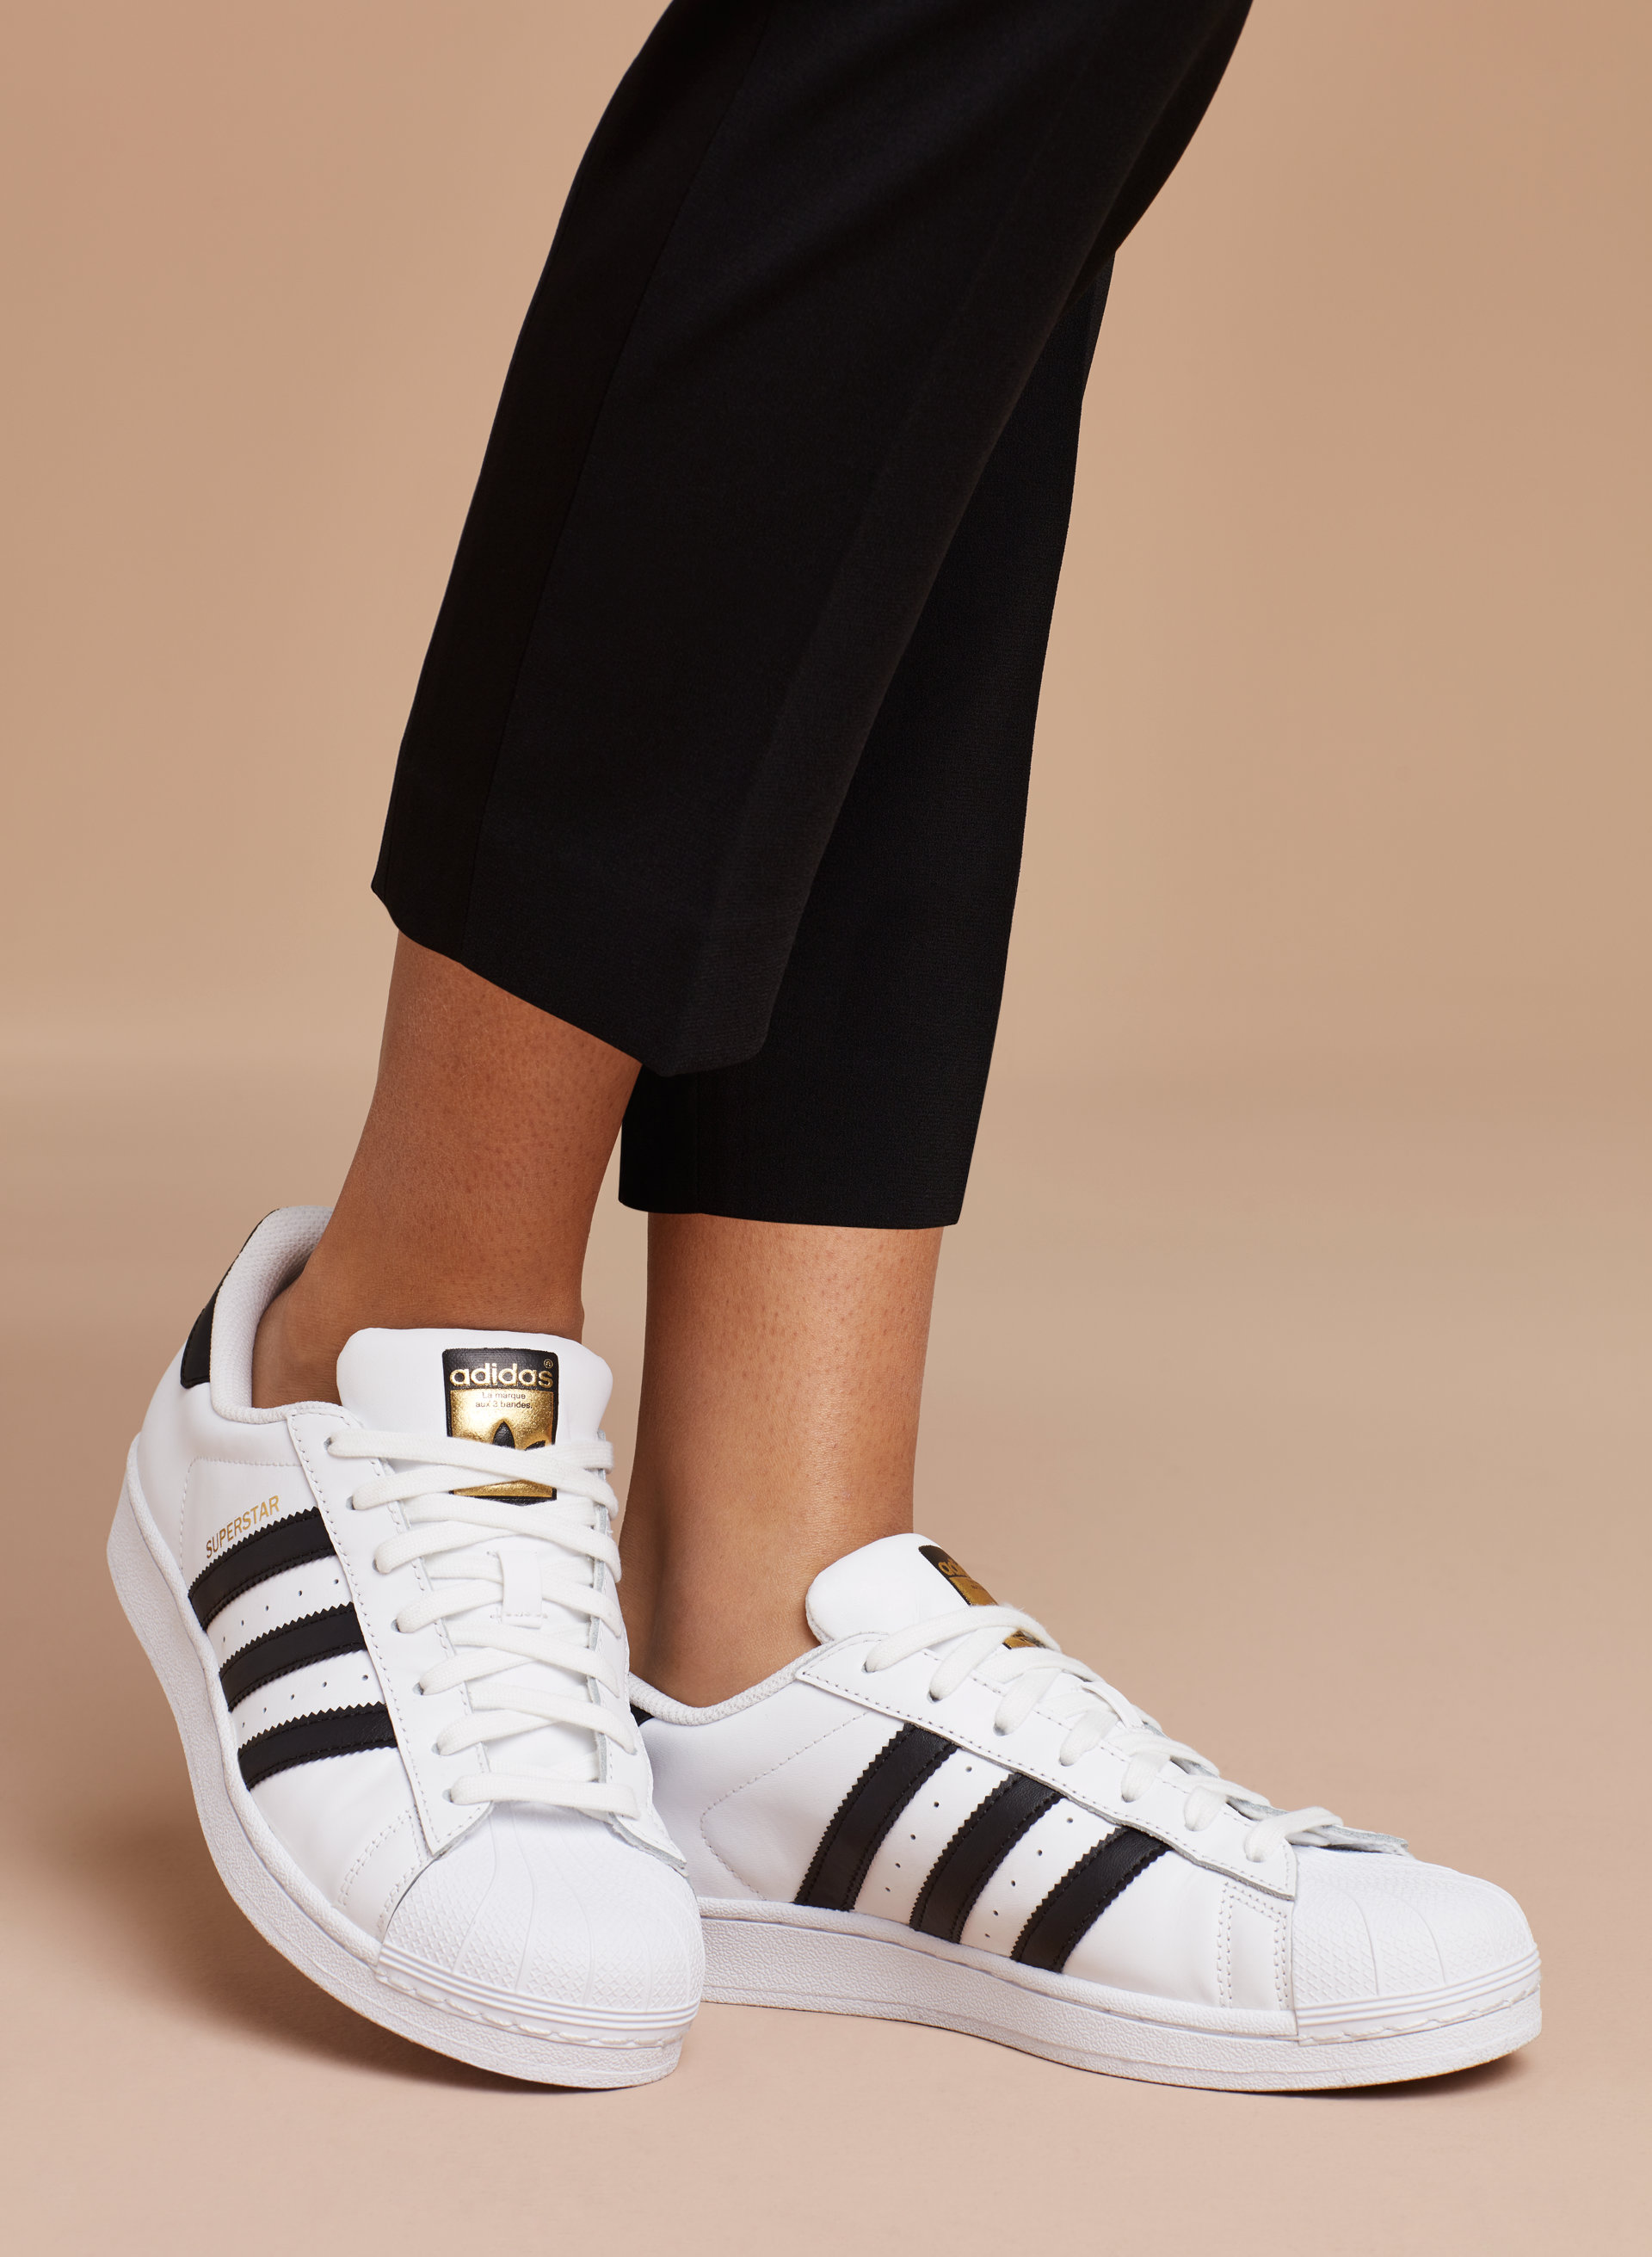 Cheap Adidas superstar femme 38 pas cher belle OPP ERA